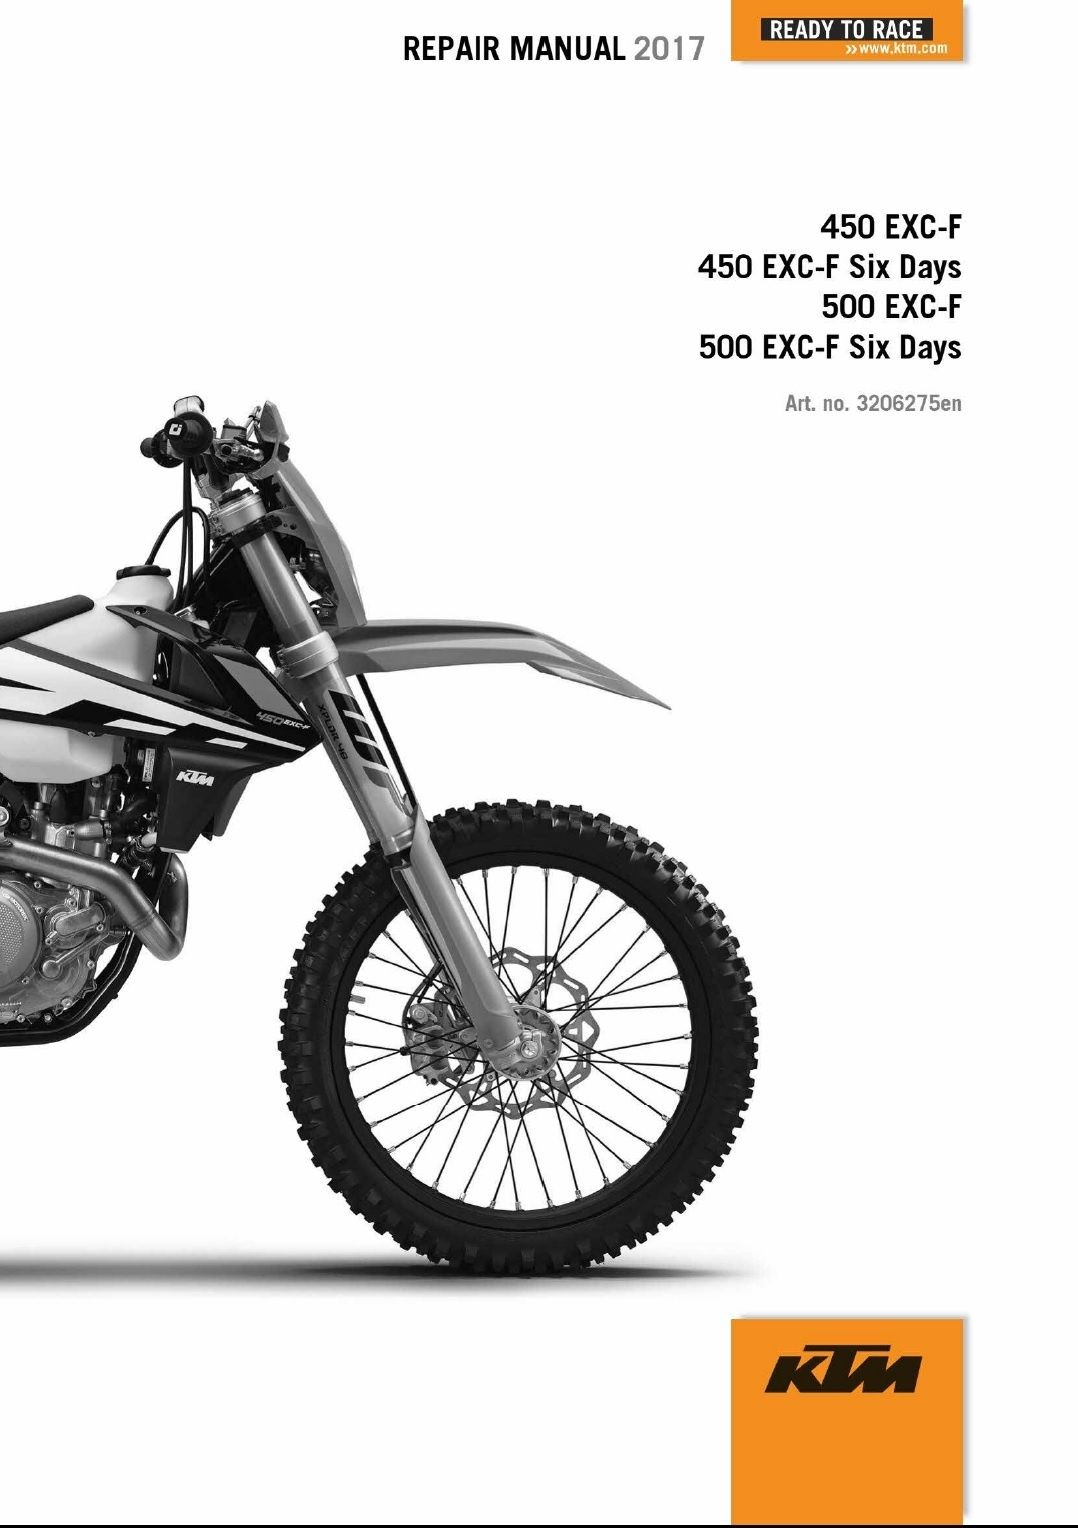 2003 ktm 525 sx exhaust diagram download wiring diagrams u2022 rh osomeweb com